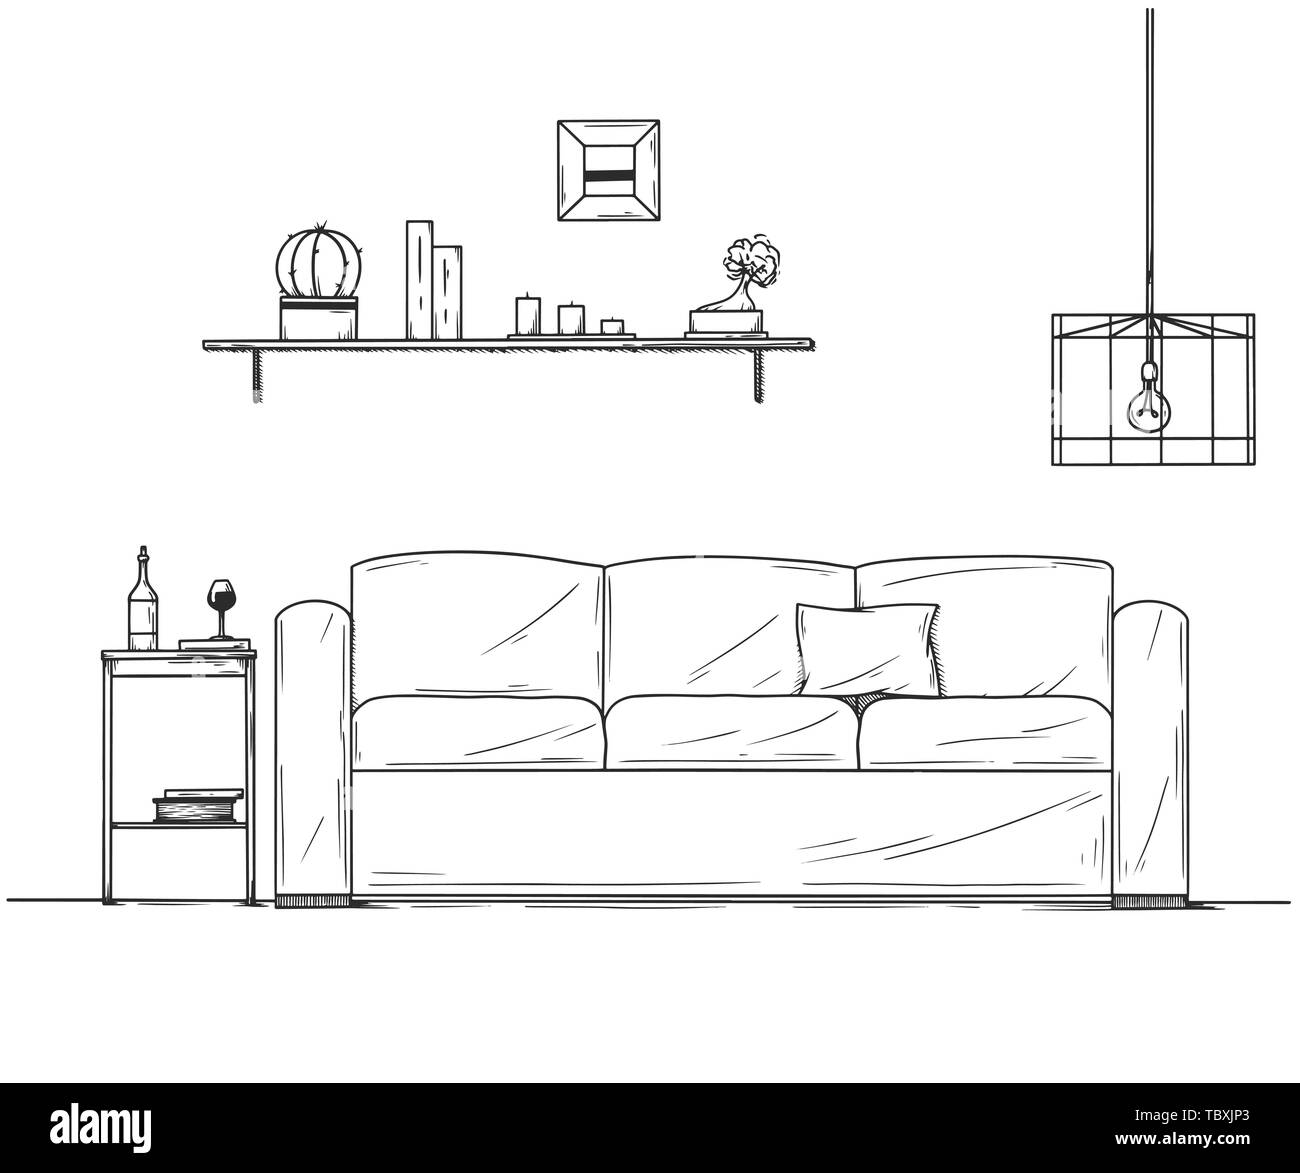 Astonishing Interior In Sketch Style Sofa Bedside Table Lamp And Unemploymentrelief Wooden Chair Designs For Living Room Unemploymentrelieforg